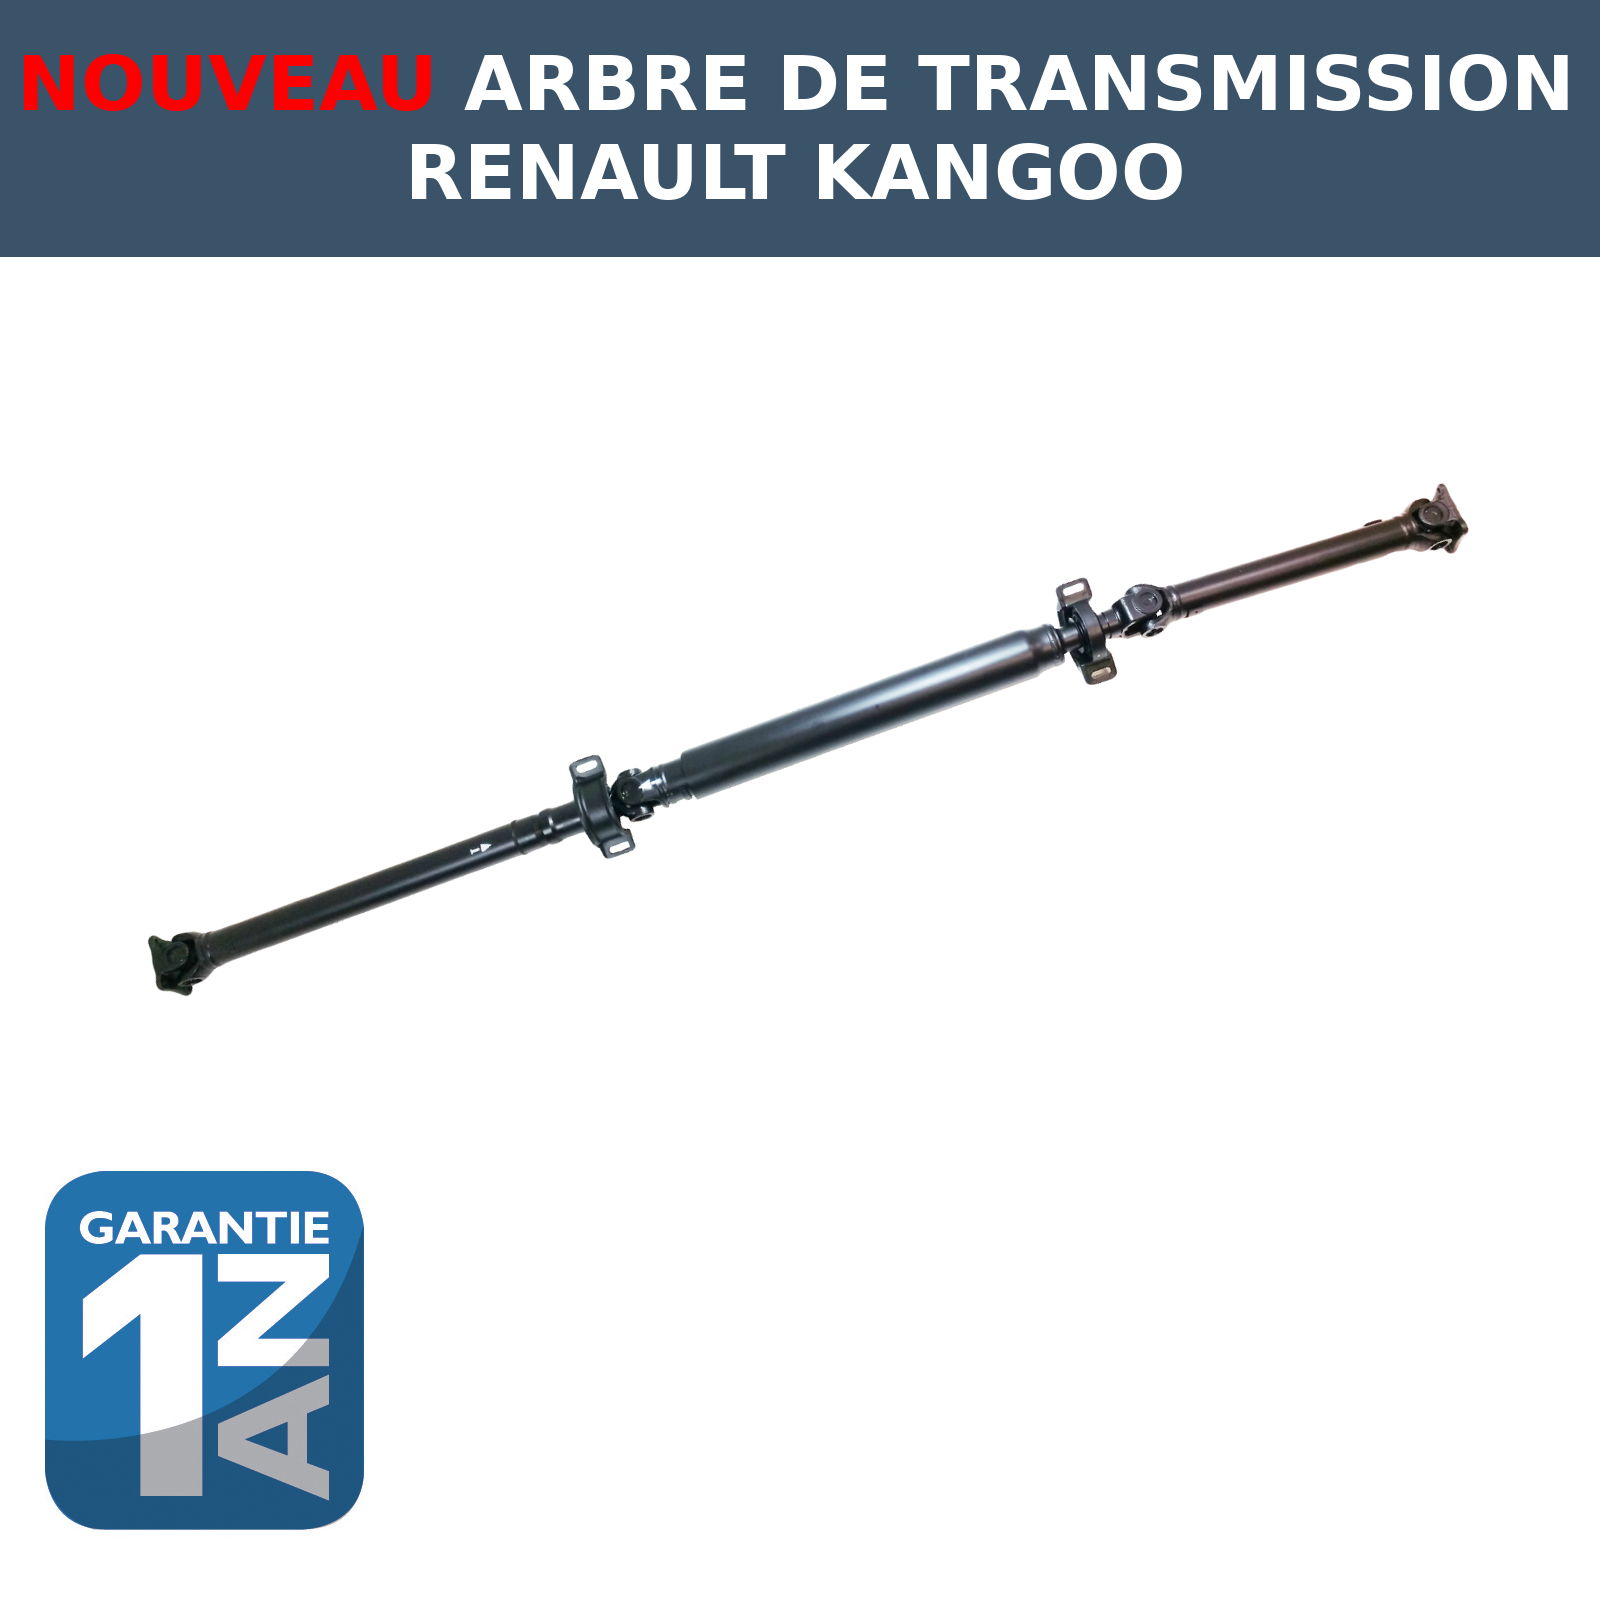 nouveau arbre de transmission pour renault kangoo 4x4 8200149811 8200144401 ebay. Black Bedroom Furniture Sets. Home Design Ideas